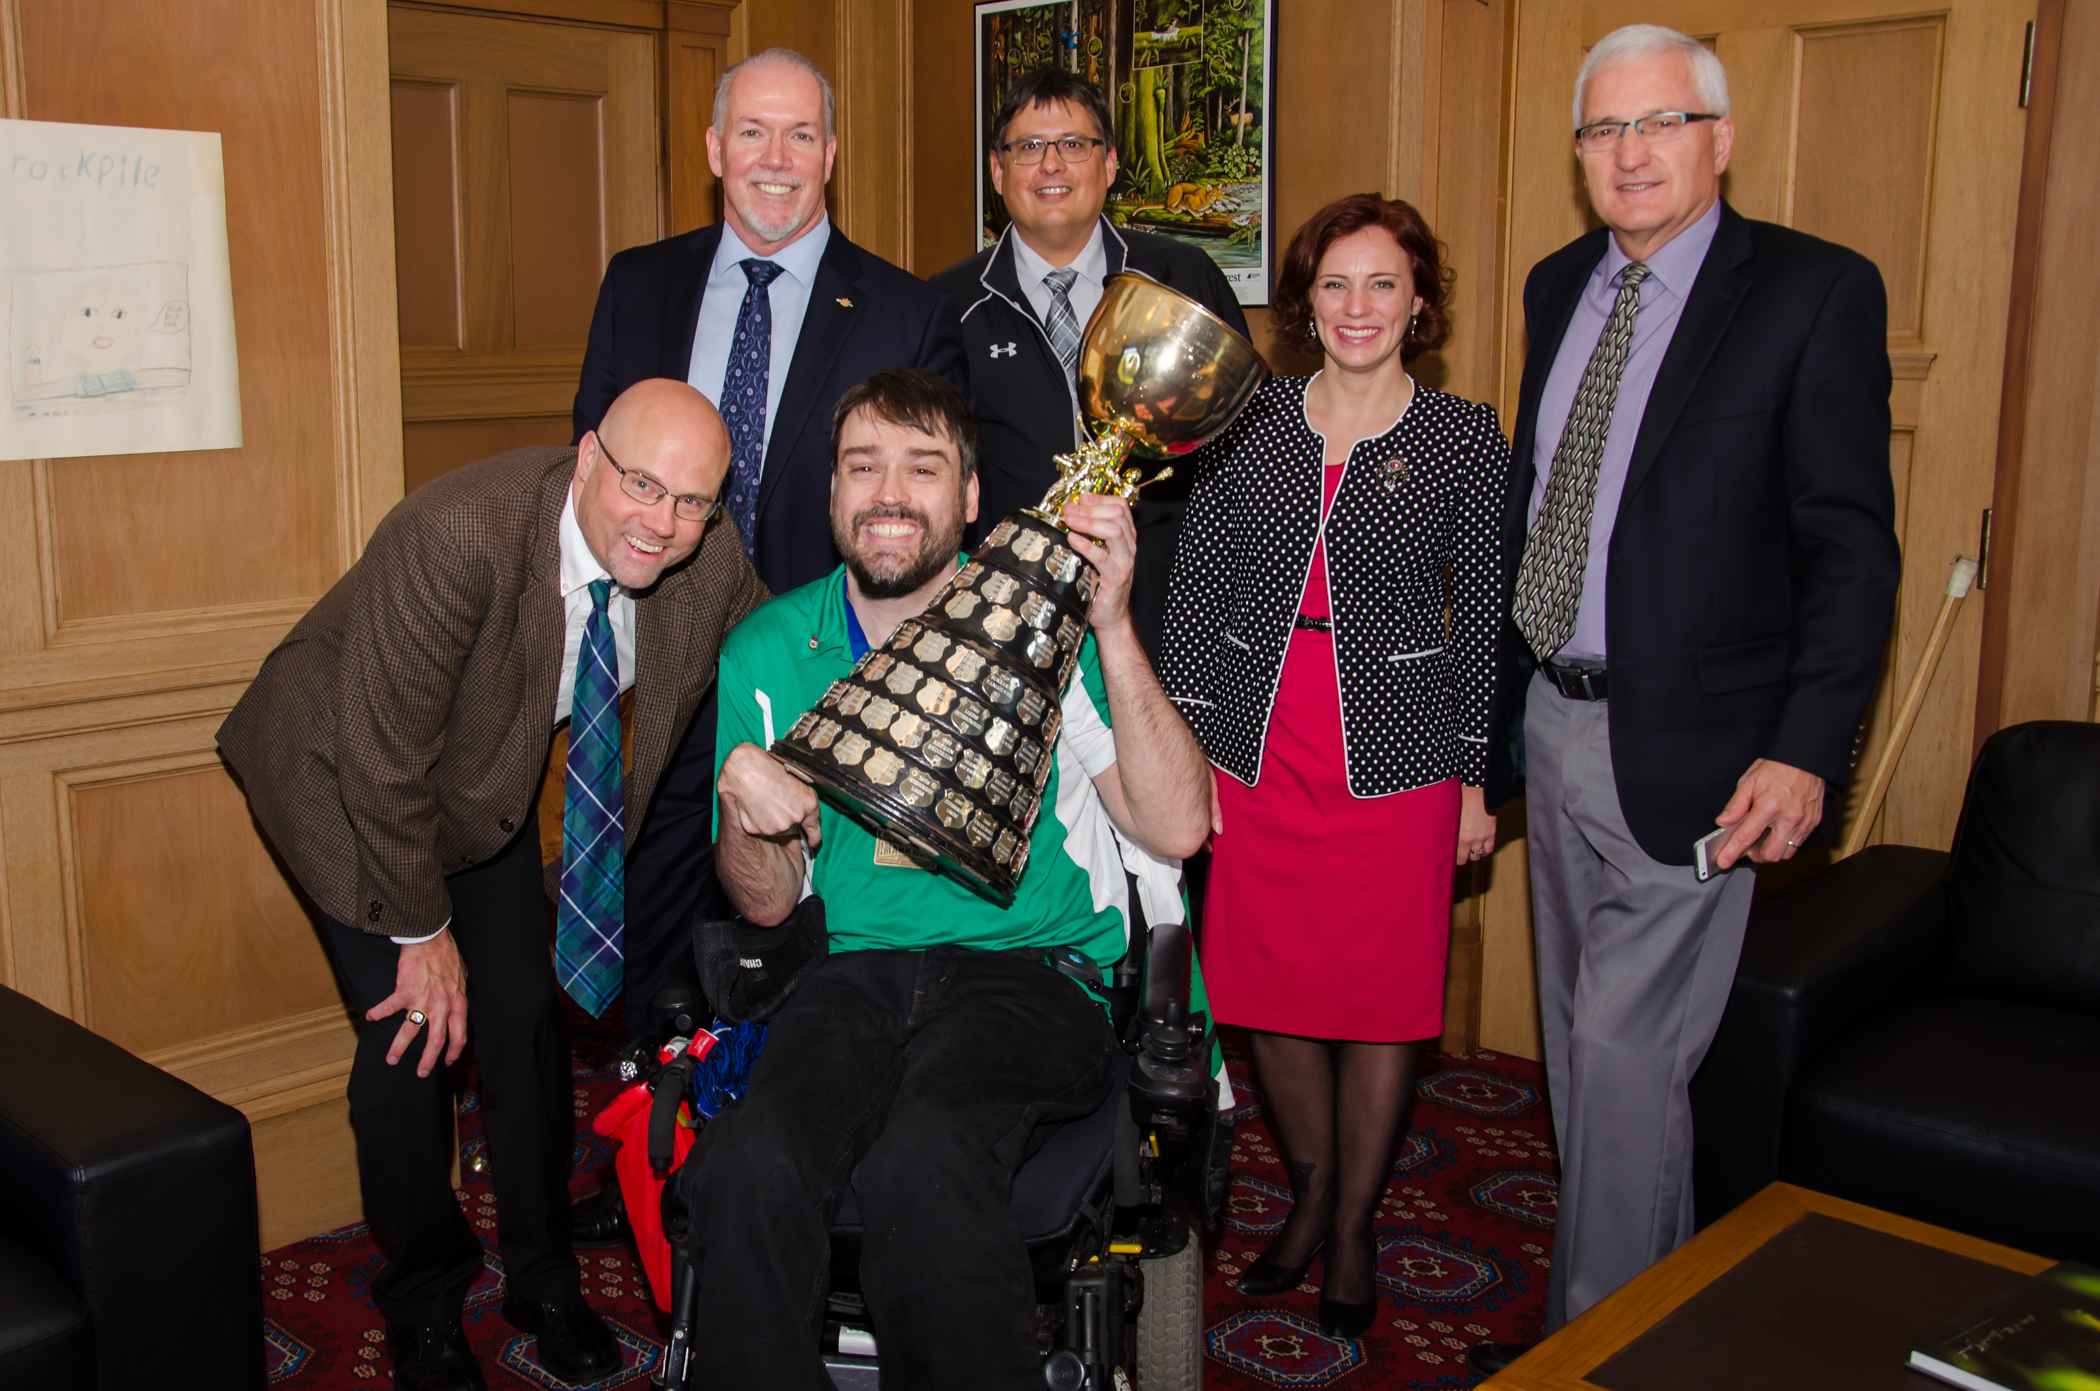 2015 Mann Cup visits the Legislature